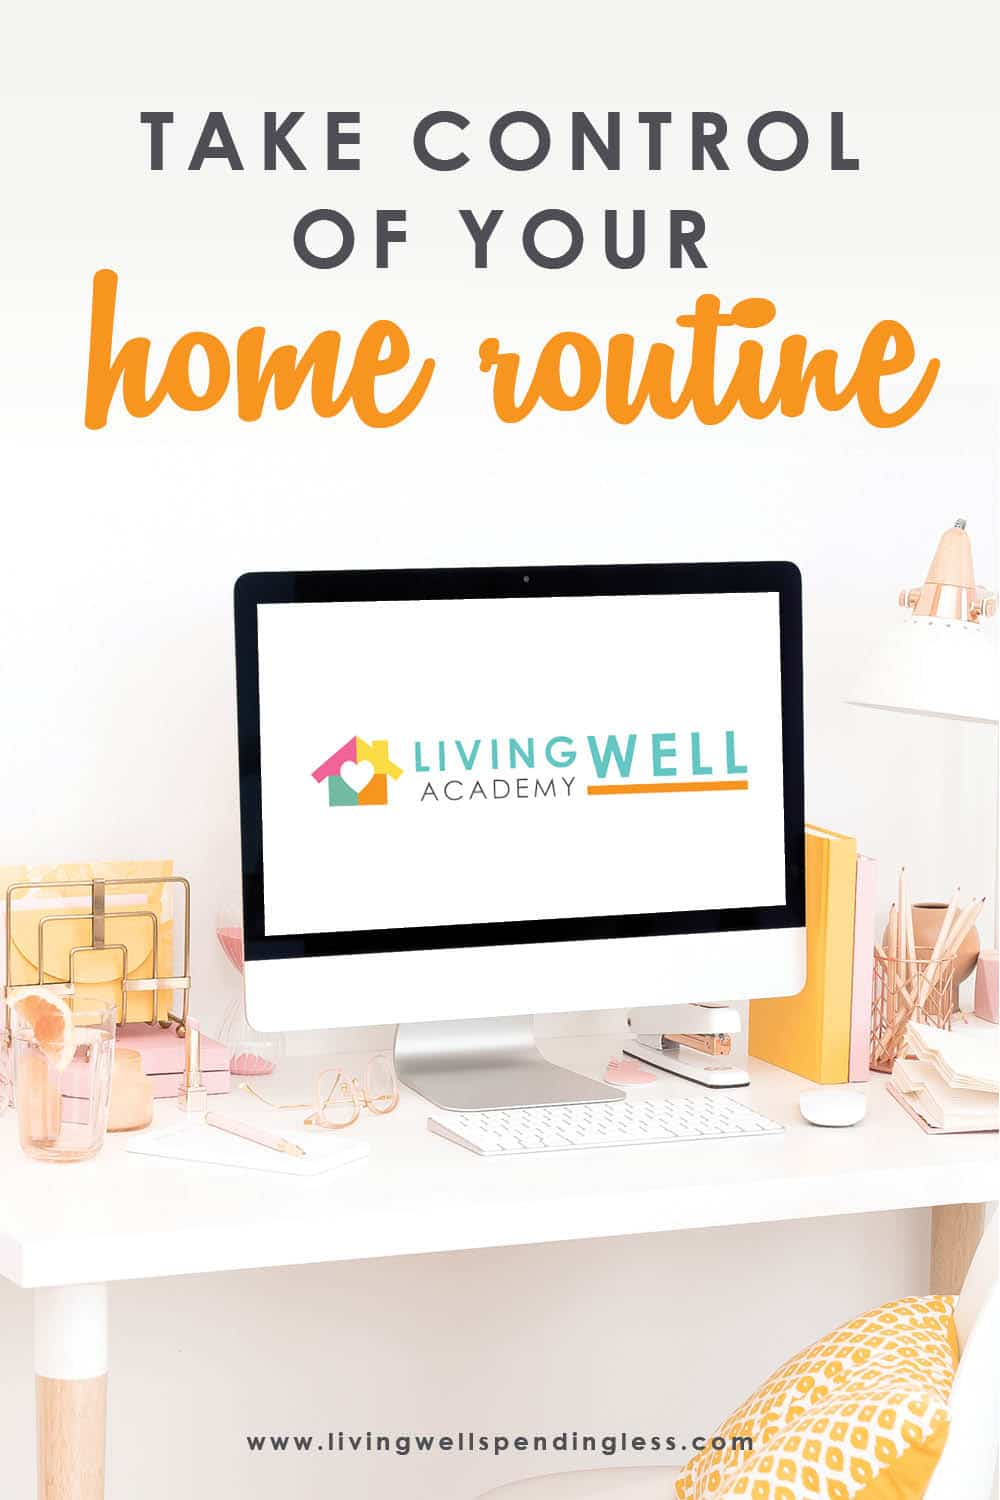 Want to Take Control of Your Home Routine? Don't Miss This! | Living Well Academy The world is a little crazy right now, and with all the stress and uncertainty going around, something to focus on to help you in all areas of life might be exactly what you need. Living Well Academy is a life management course created explicitly to help you feel productive and confident in four key areas: habits and routine, simplifying mealtime, keeping tidy, and mastering money. After this course, you will feel ready to tackle whatever craziness comes your way! Don't miss this first launch that we'll be hosting live! #lifegoals #mastermoney #smartmoney #foodmadesimple